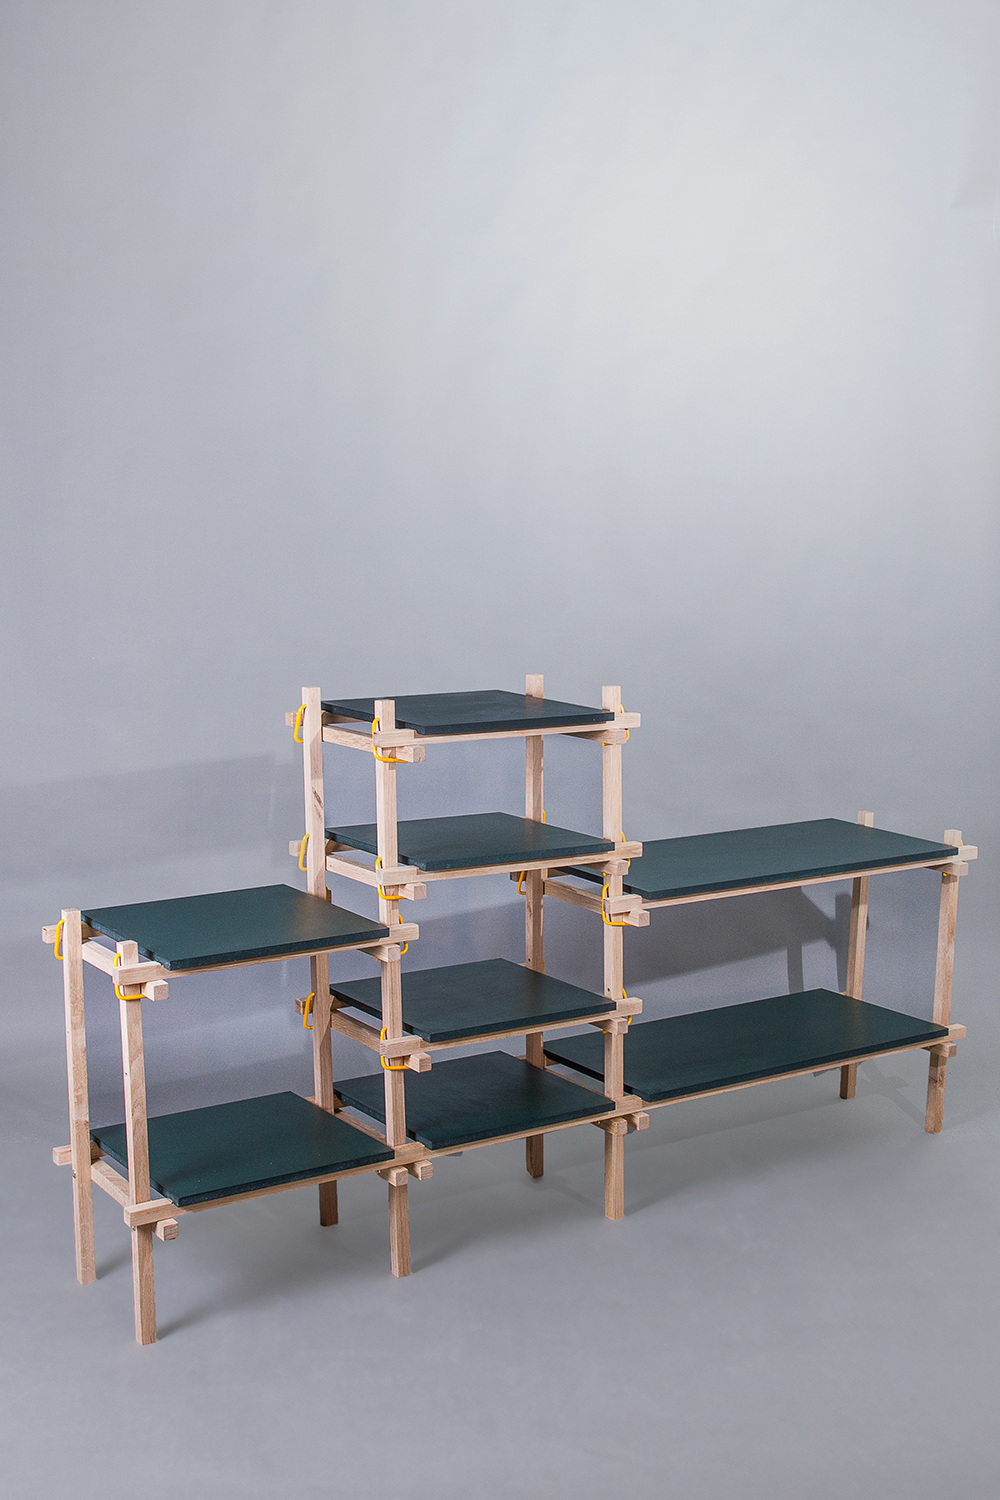 Lena Mari Skjoldal Kolås'  Gerrit  shelving is also designed for workshops. Made of simple solid oak elements.